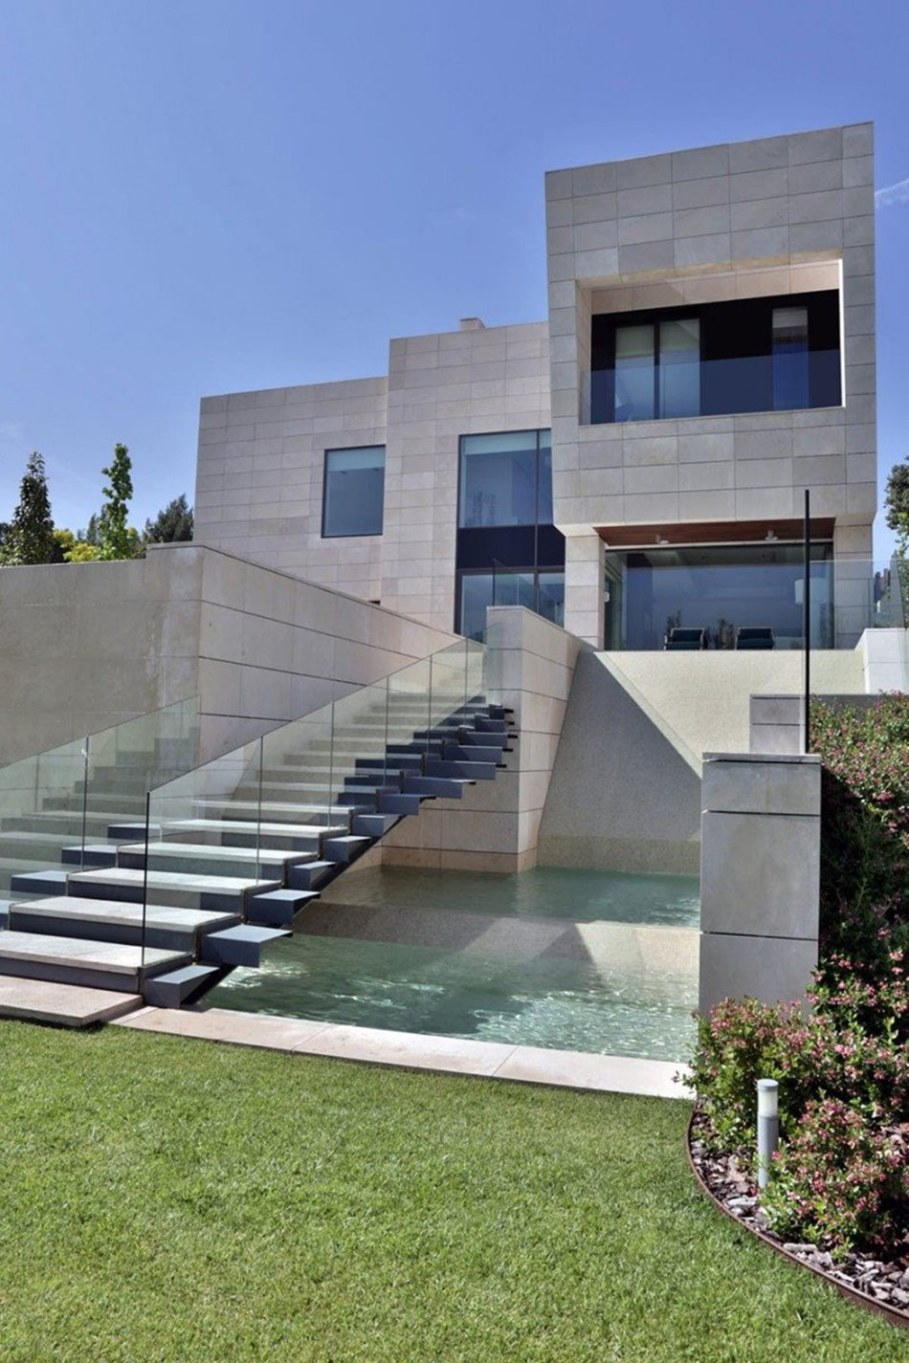 A modern villa in Spain - the main entrance